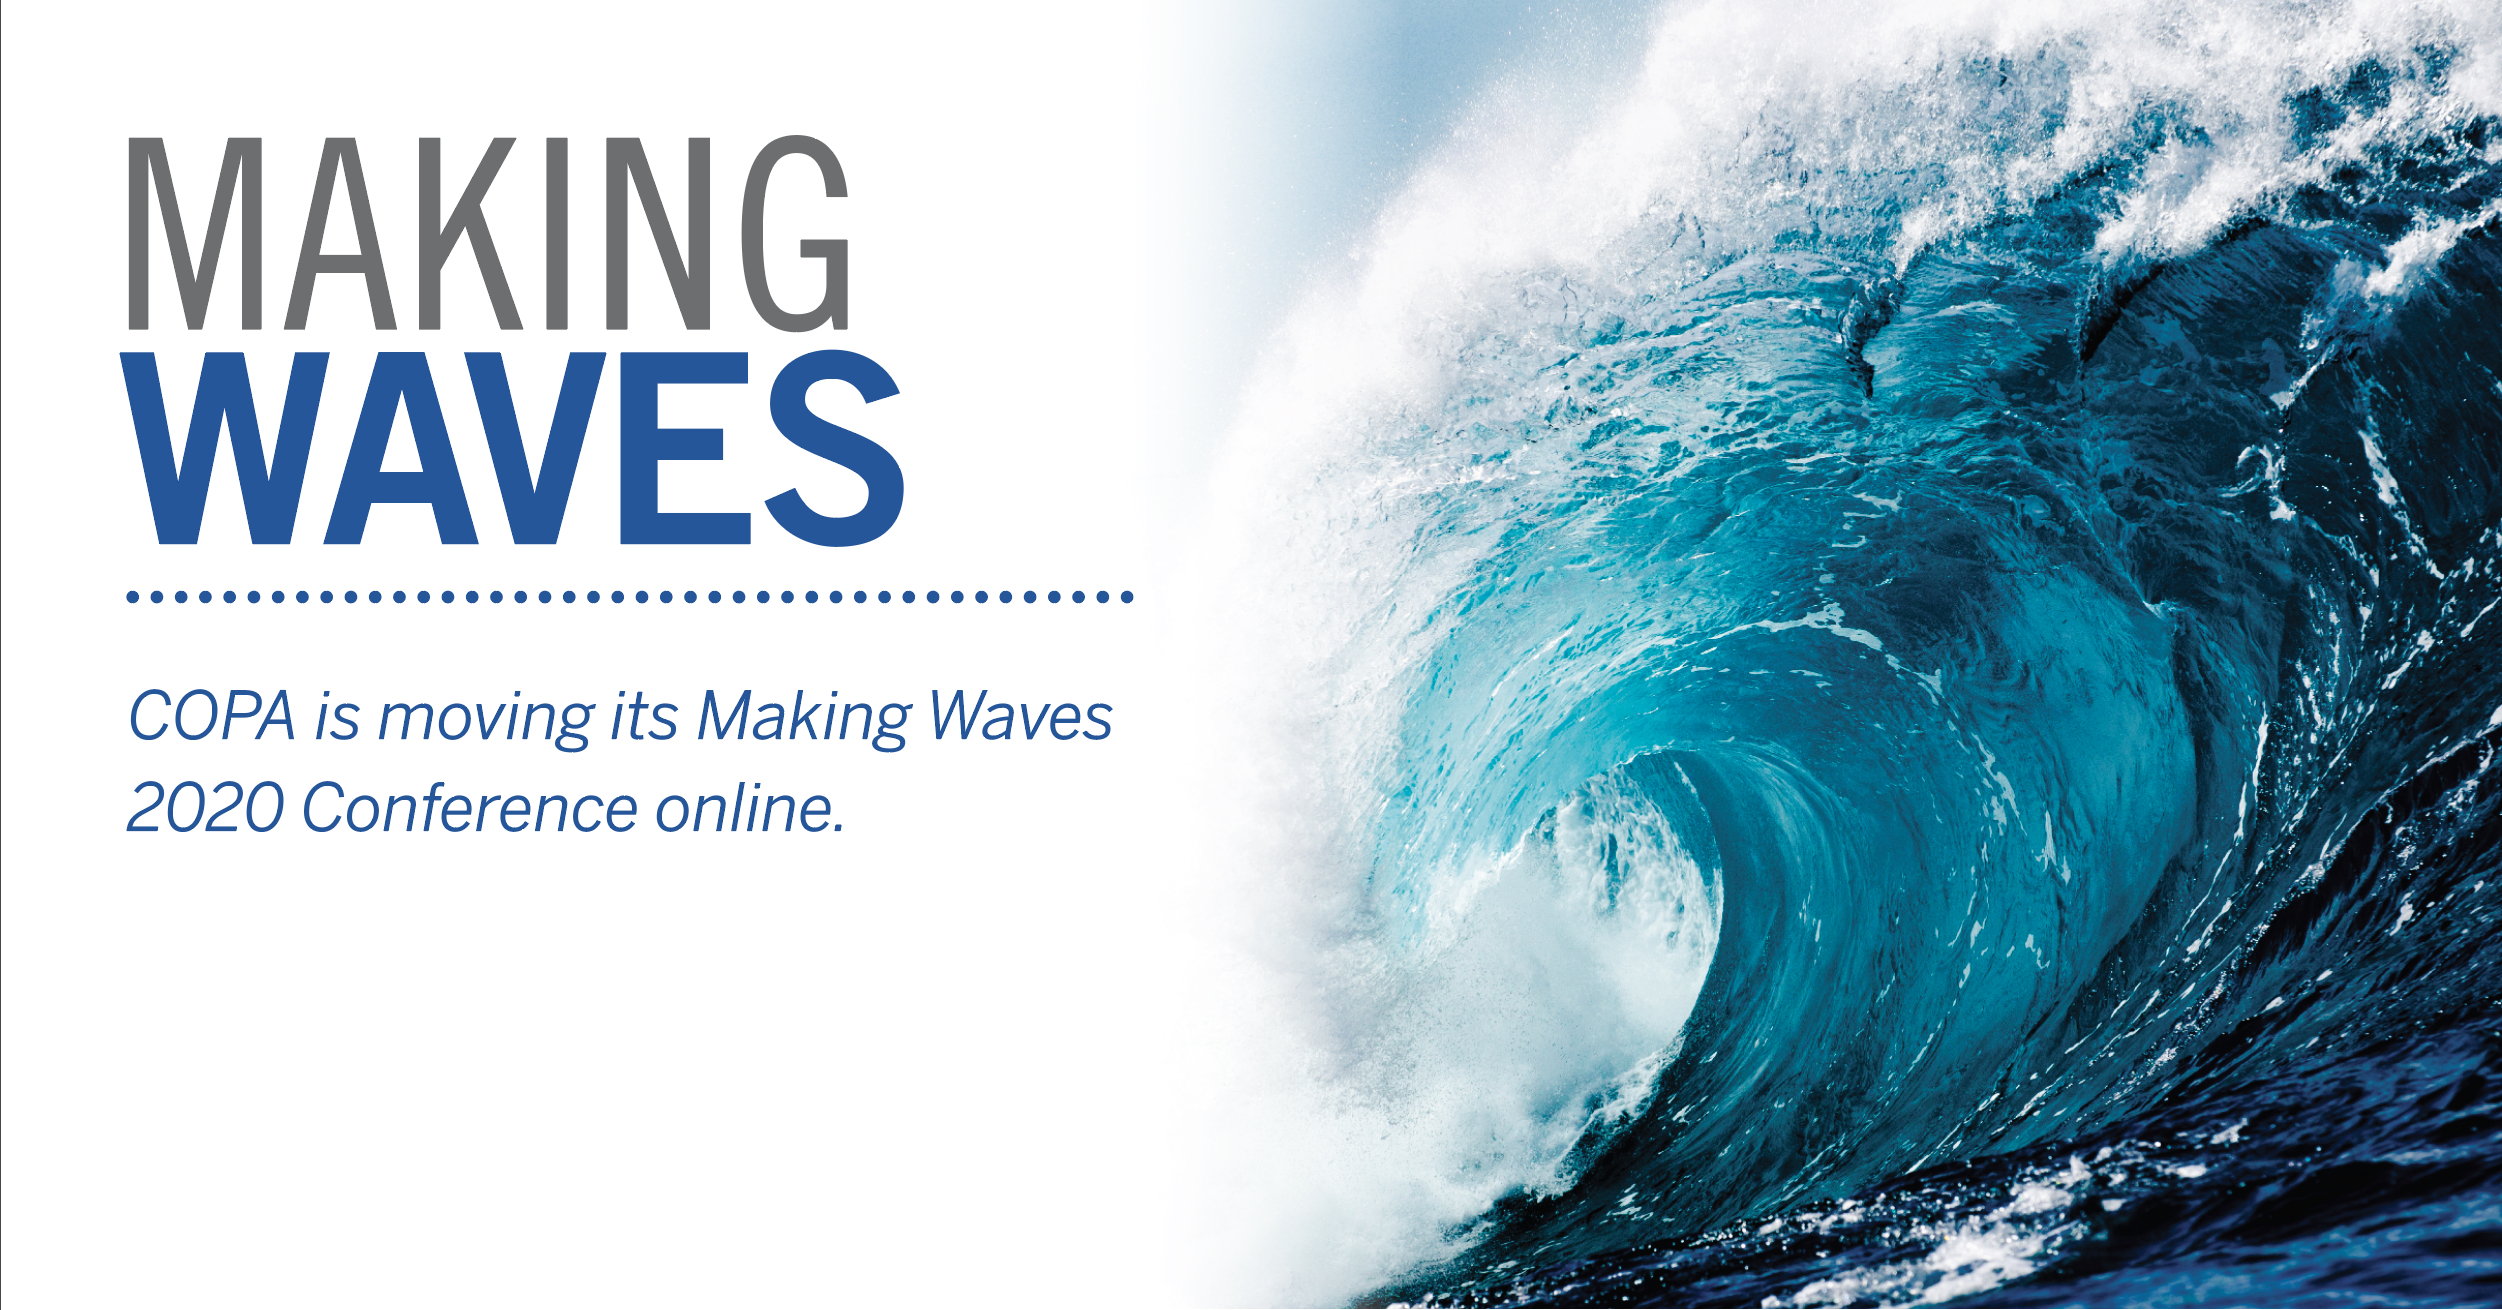 COPA's Making Waves 2020 Gets a Digital Makeover